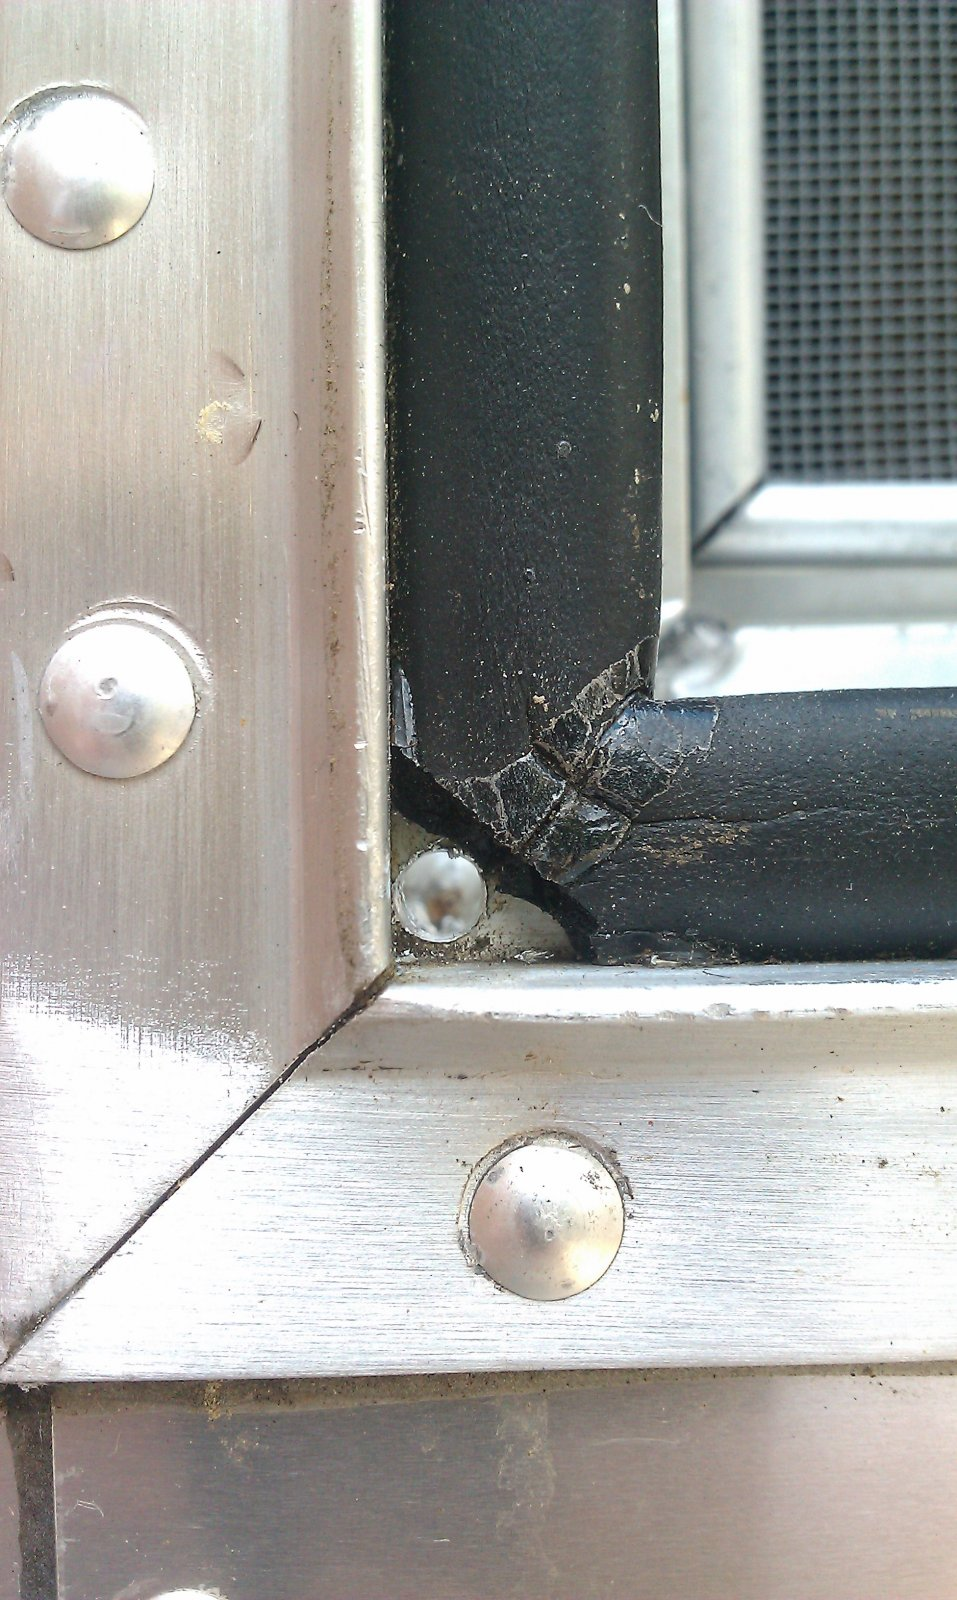 Click image for larger version  Name:rear window drain.jpg Views:161 Size:287.5 KB ID:204405